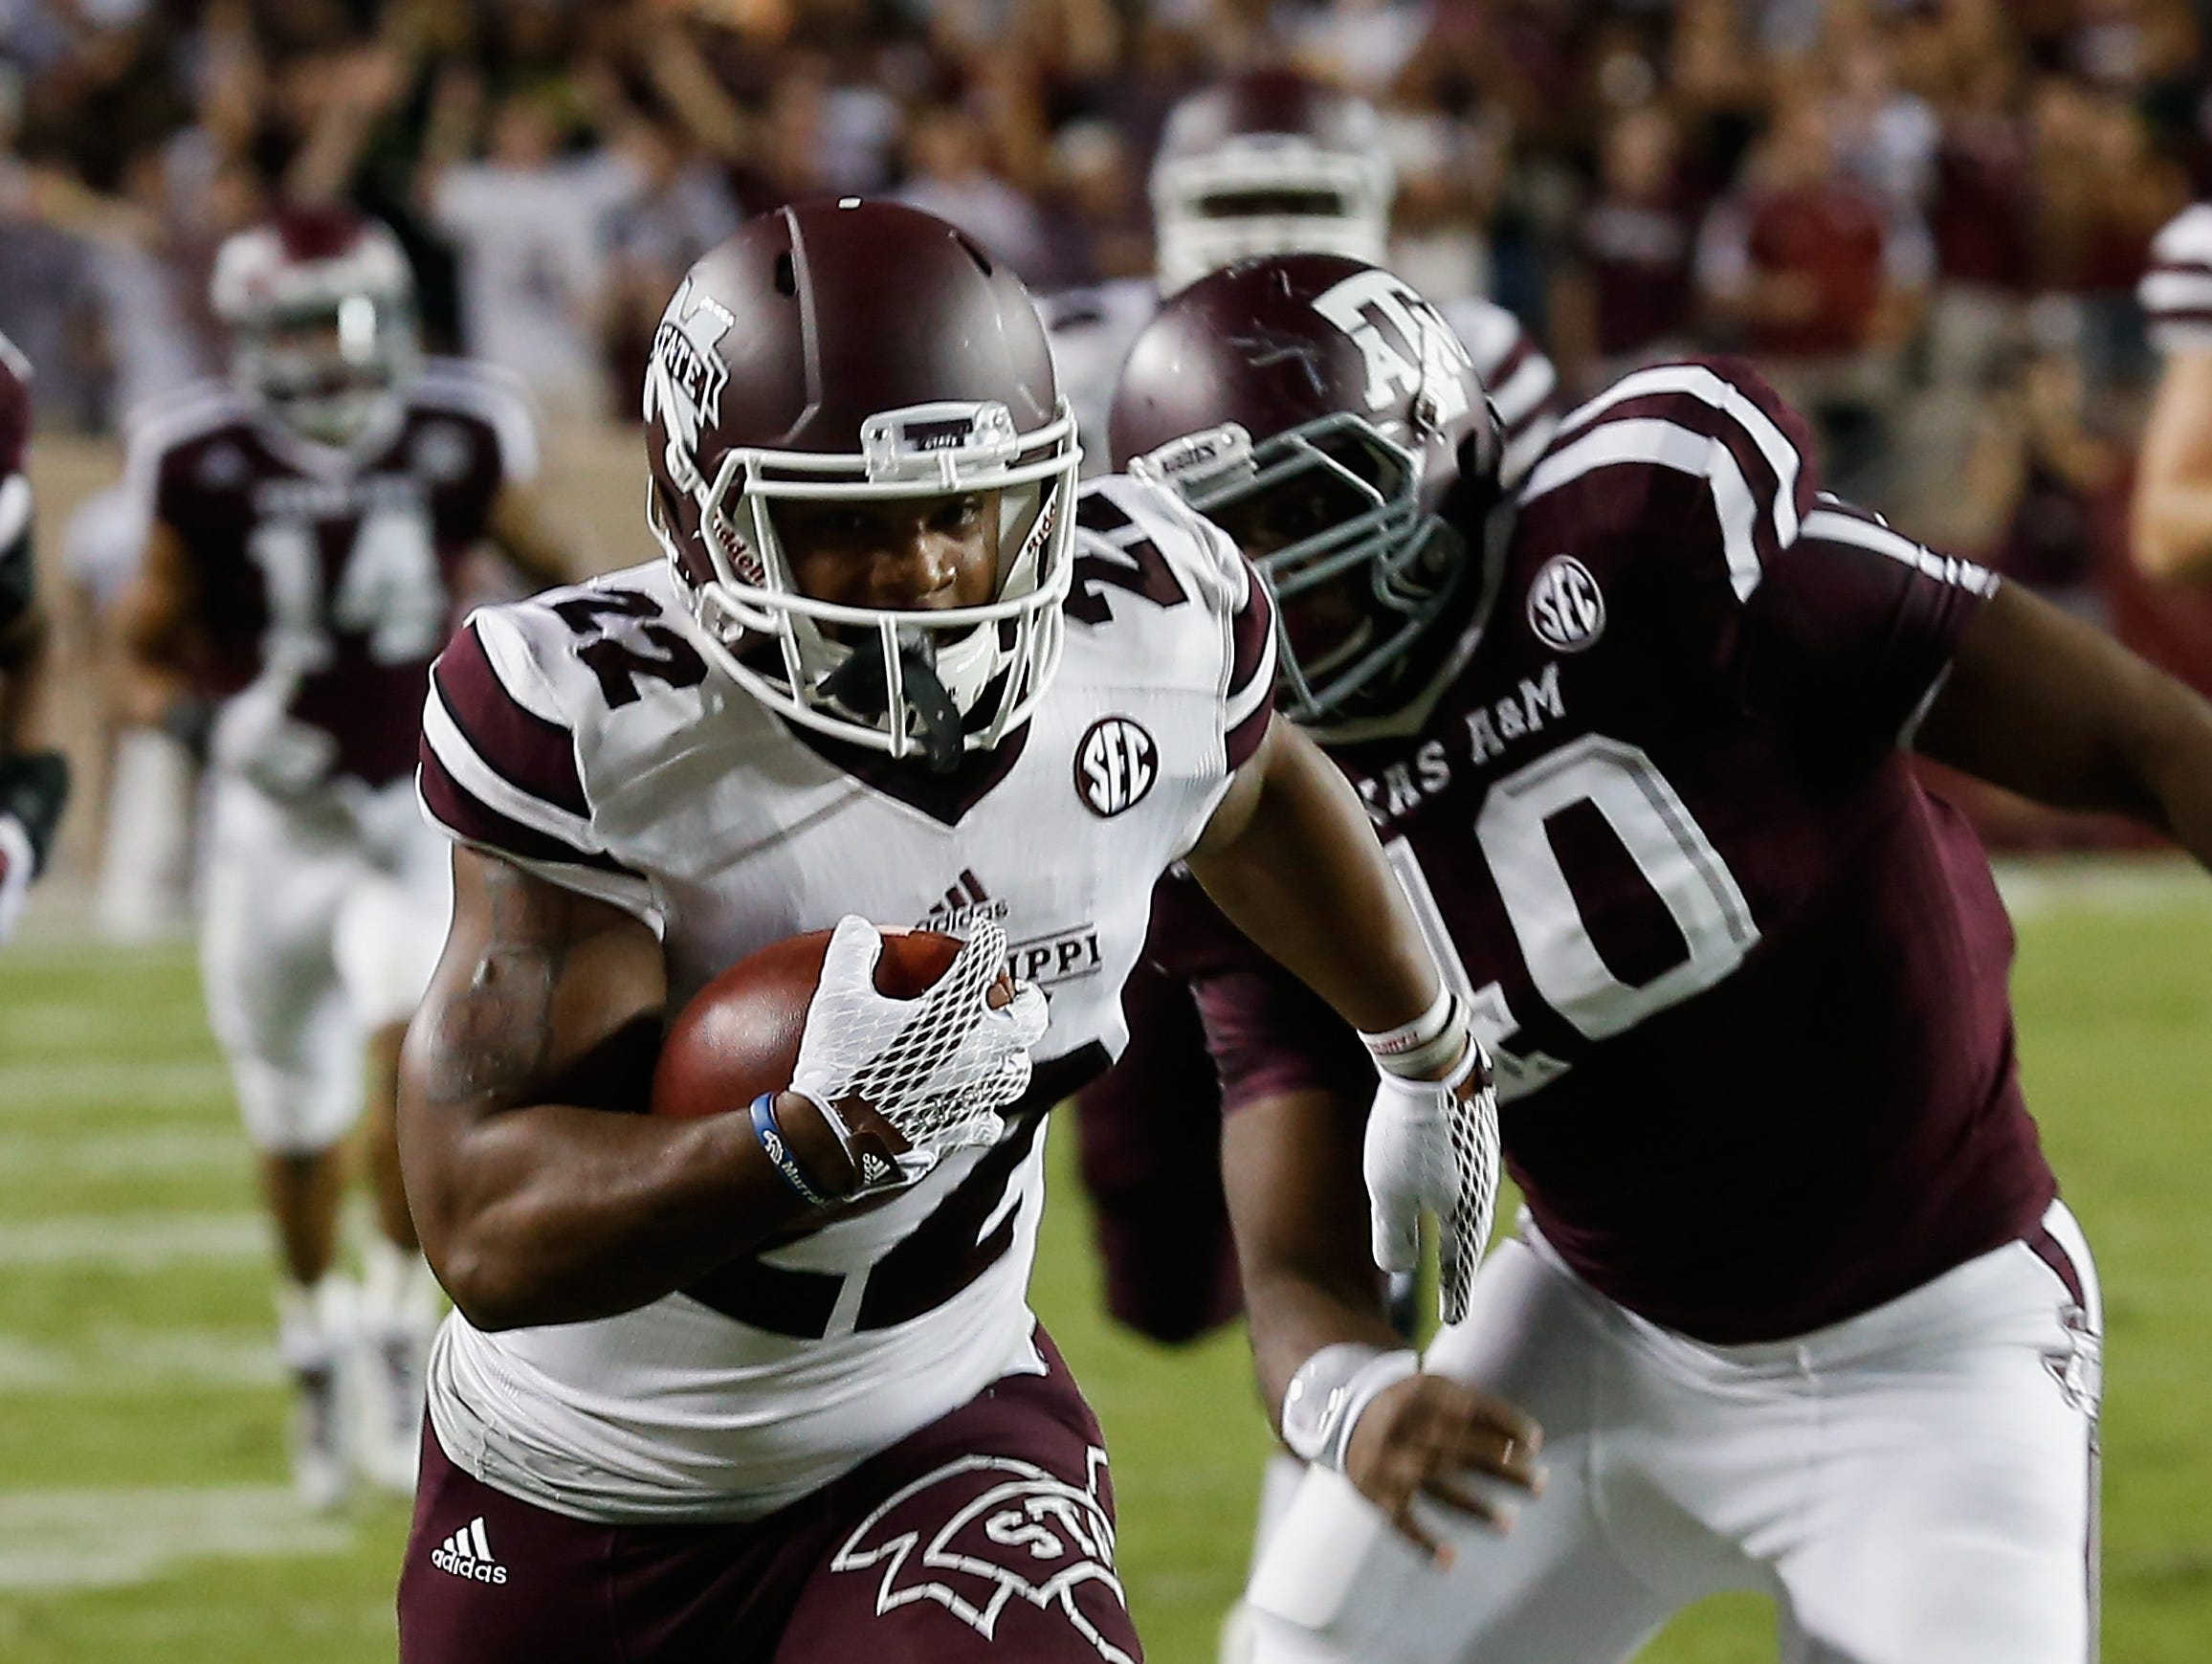 Mississippi State freshman Malik Dear scored Mississippi State's first touchdown of Saturday's 30-17 loss at Texas A&M.